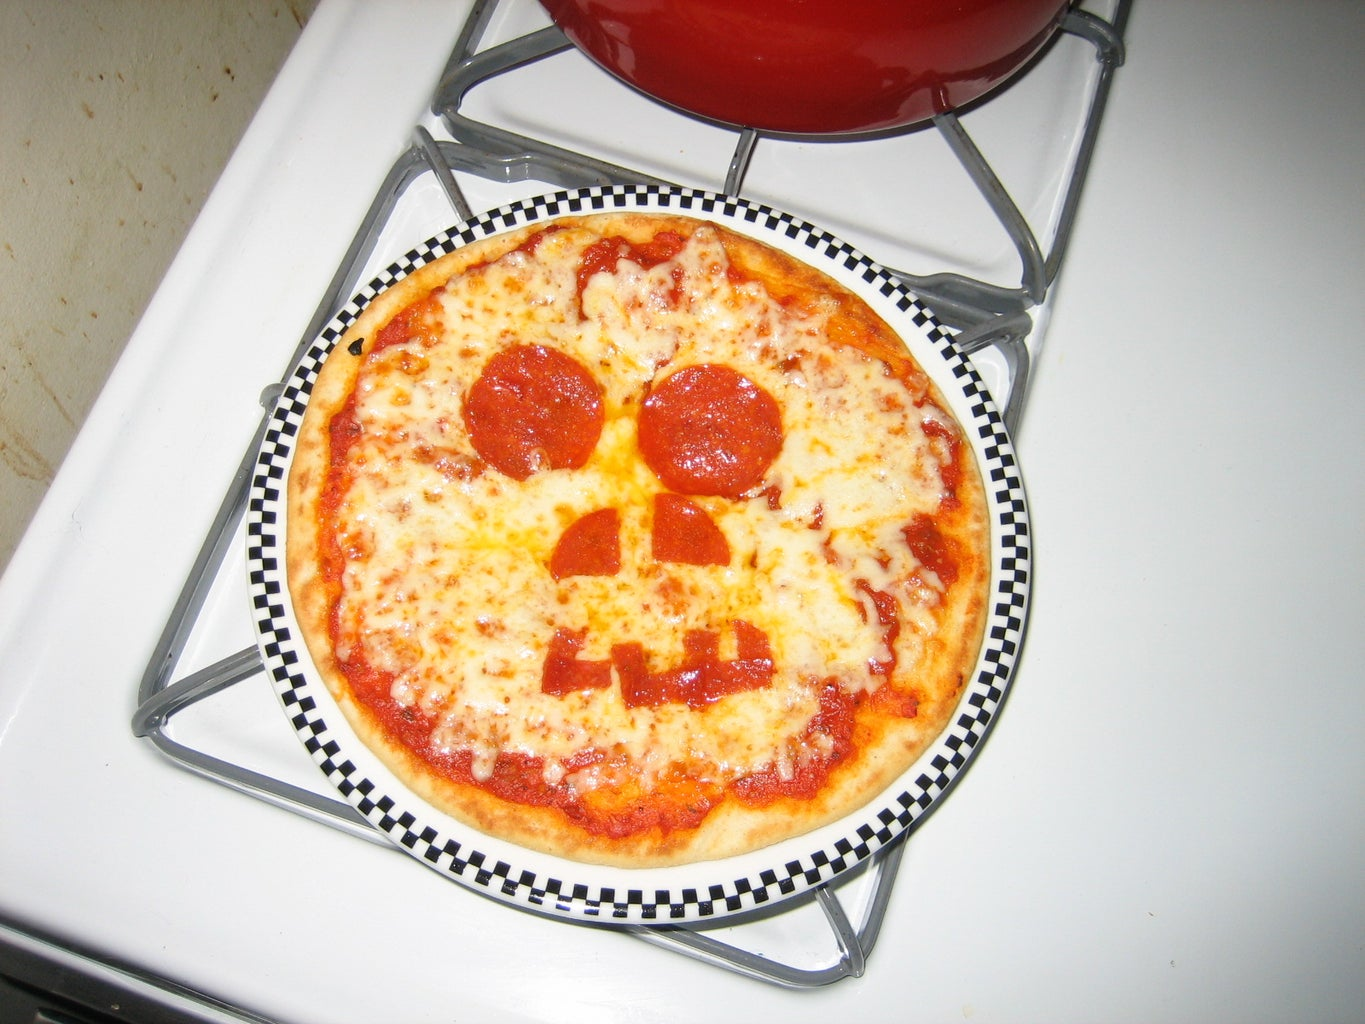 Commence the Devouring of Souls... or Pizzas.